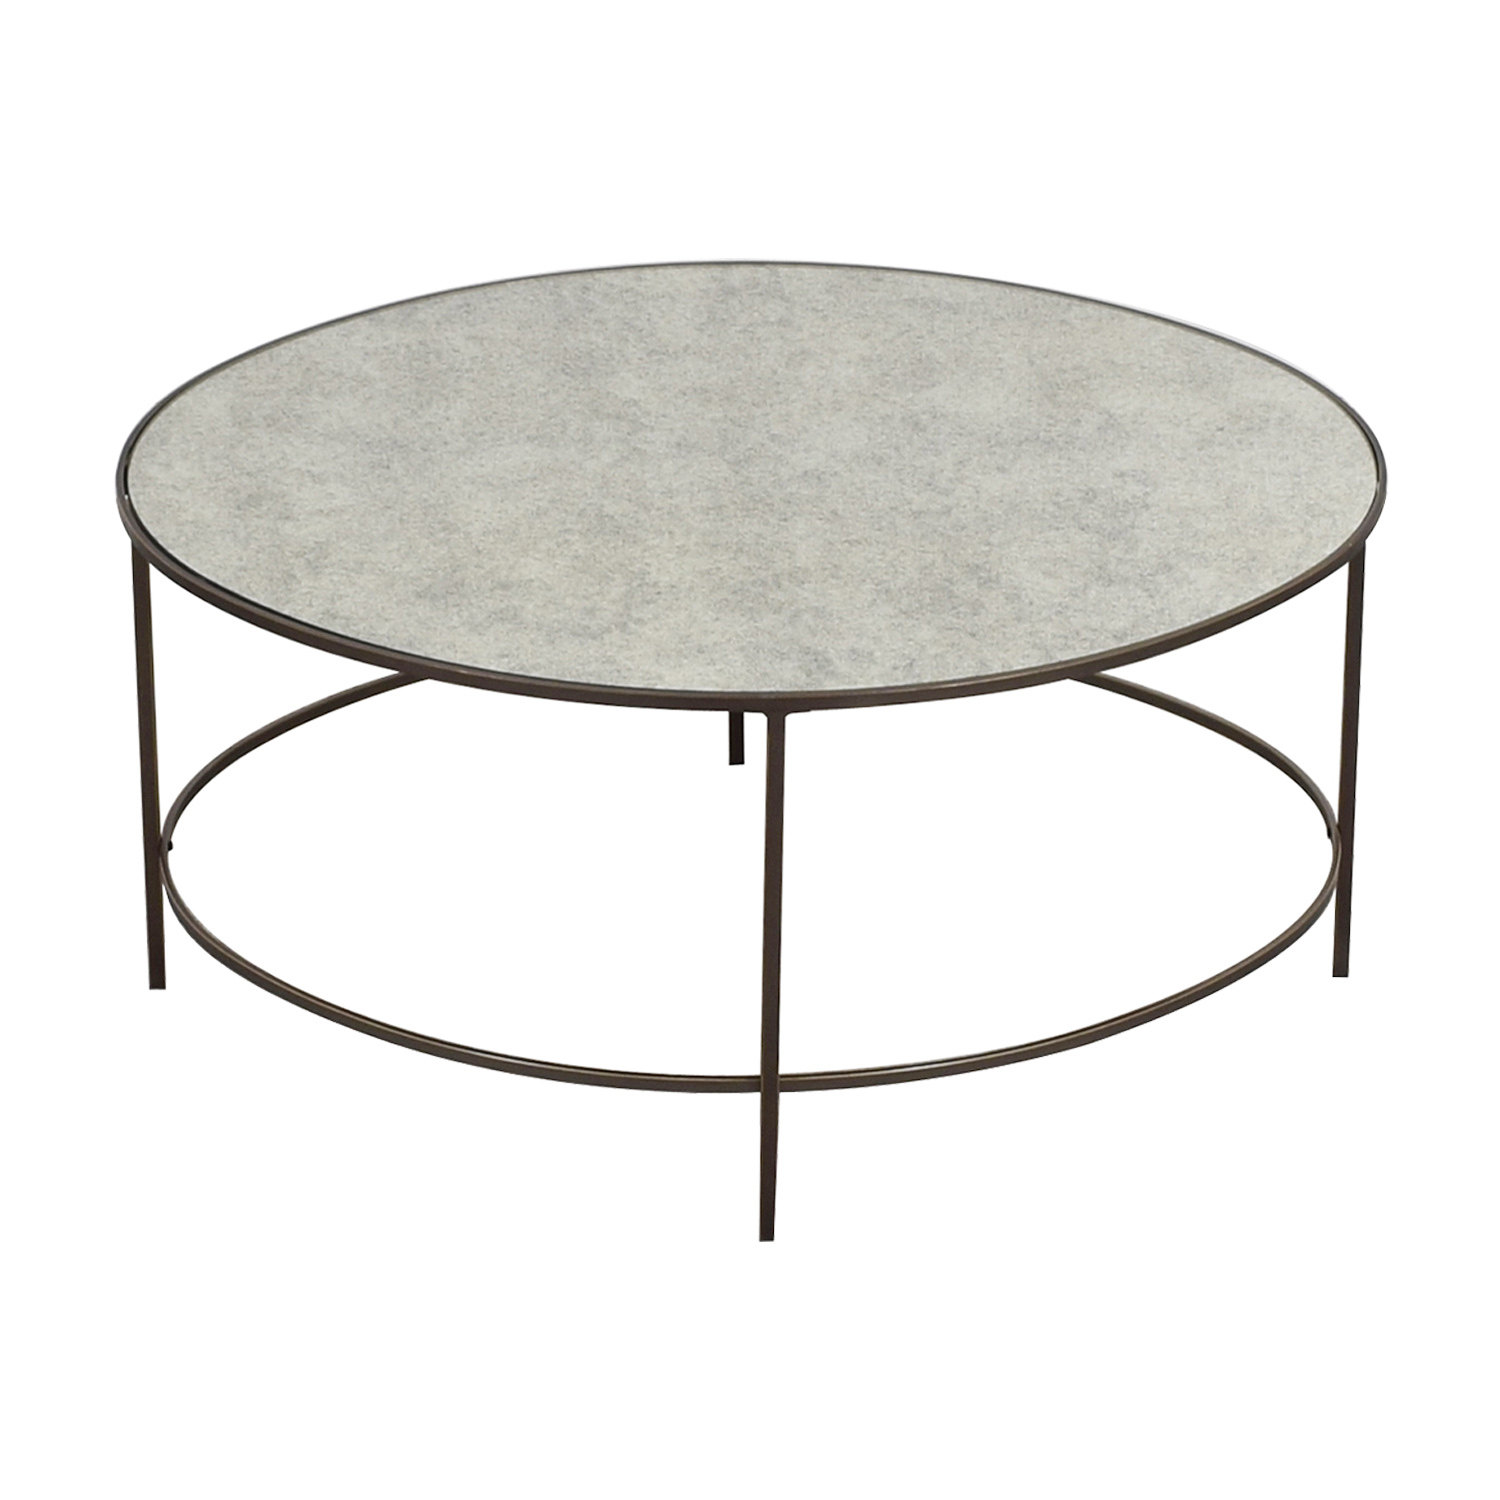 West Elm West Elm Oval Metal and Mirror Coffee Table second hand